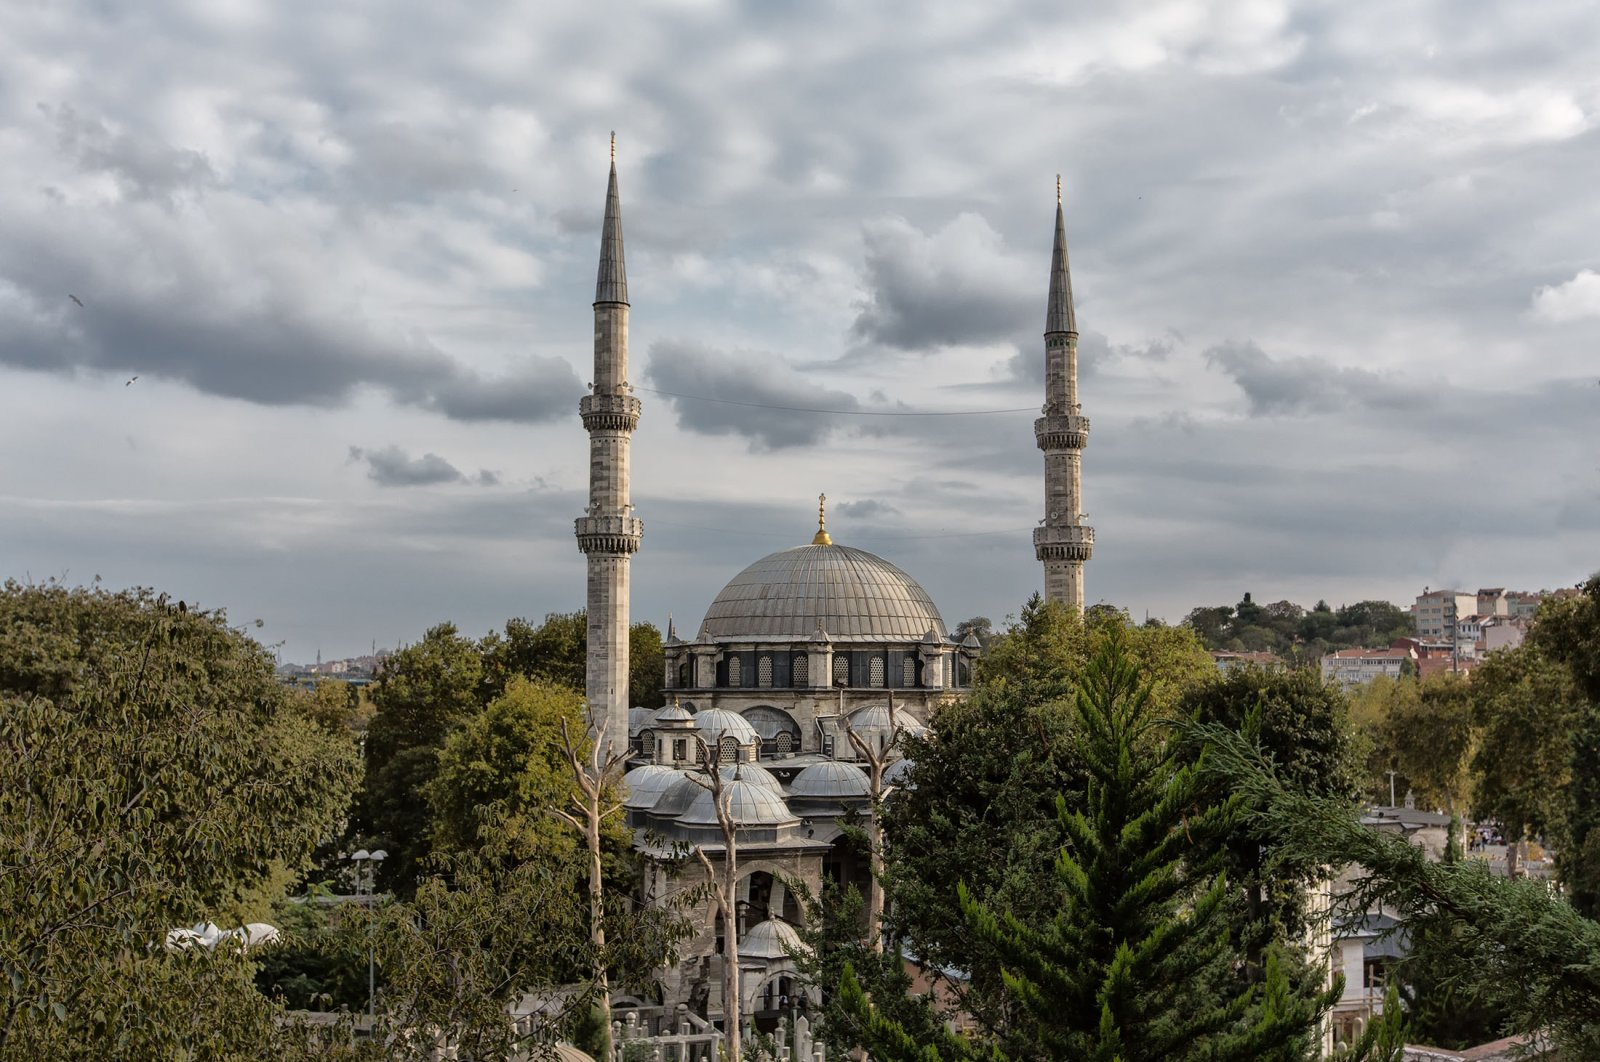 The Eyüp Sultan Mosque sits outside the historic city walls of Istanbul near the Golden Horn. (Shutterstock Photo)